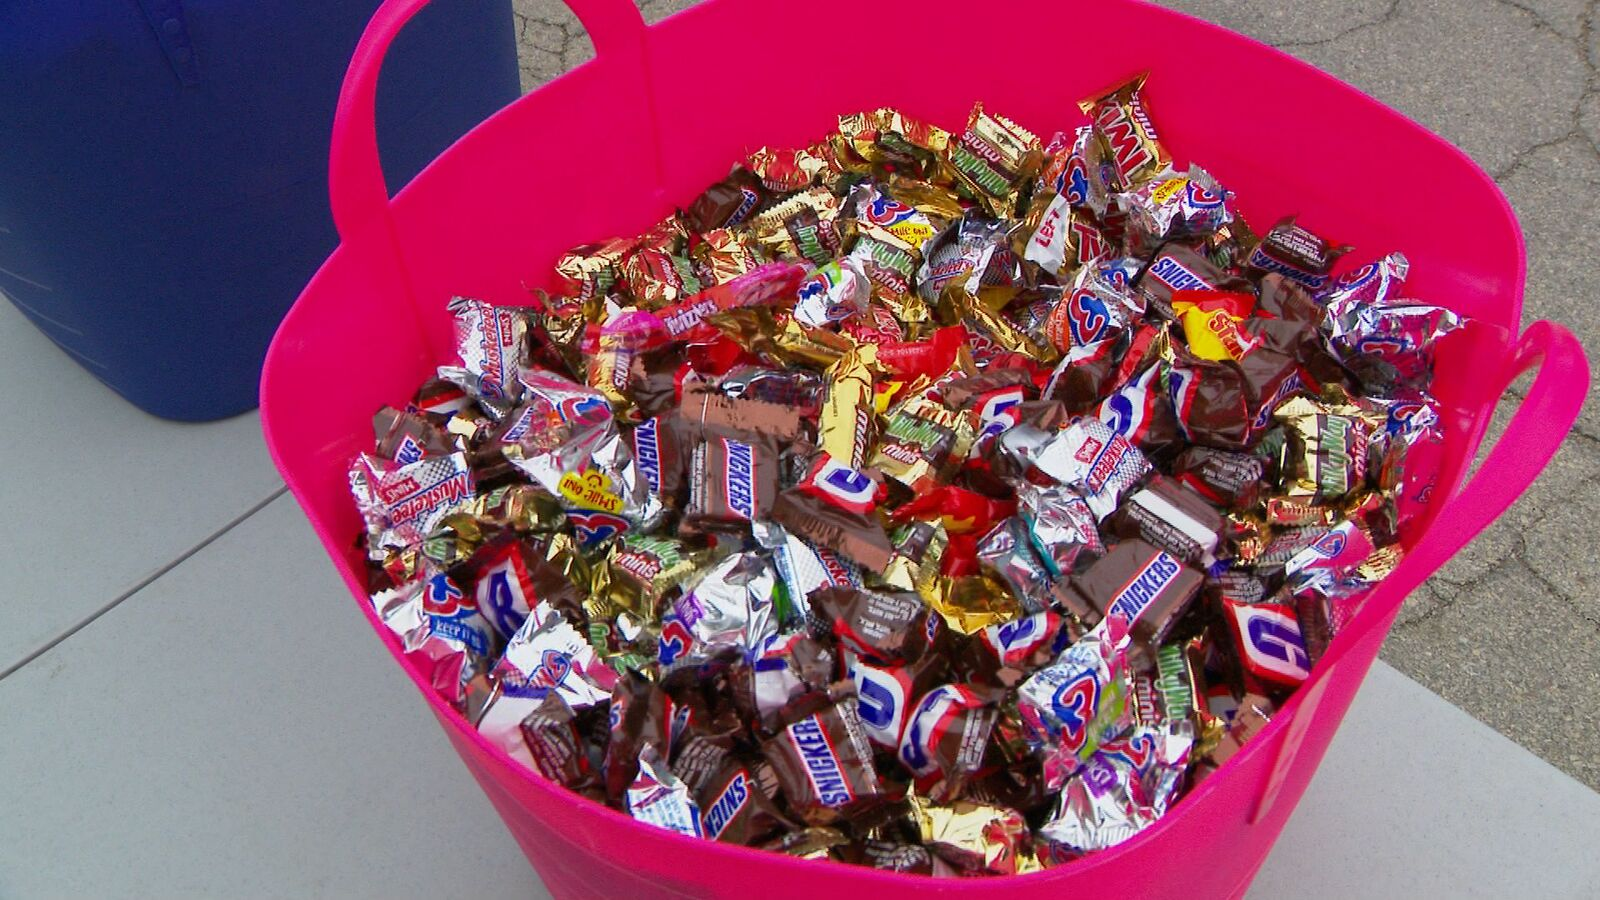 A bucket of Halloween candy at the Truck or Treat event in Menomonie Park Zoo (courtesy: WLUK)